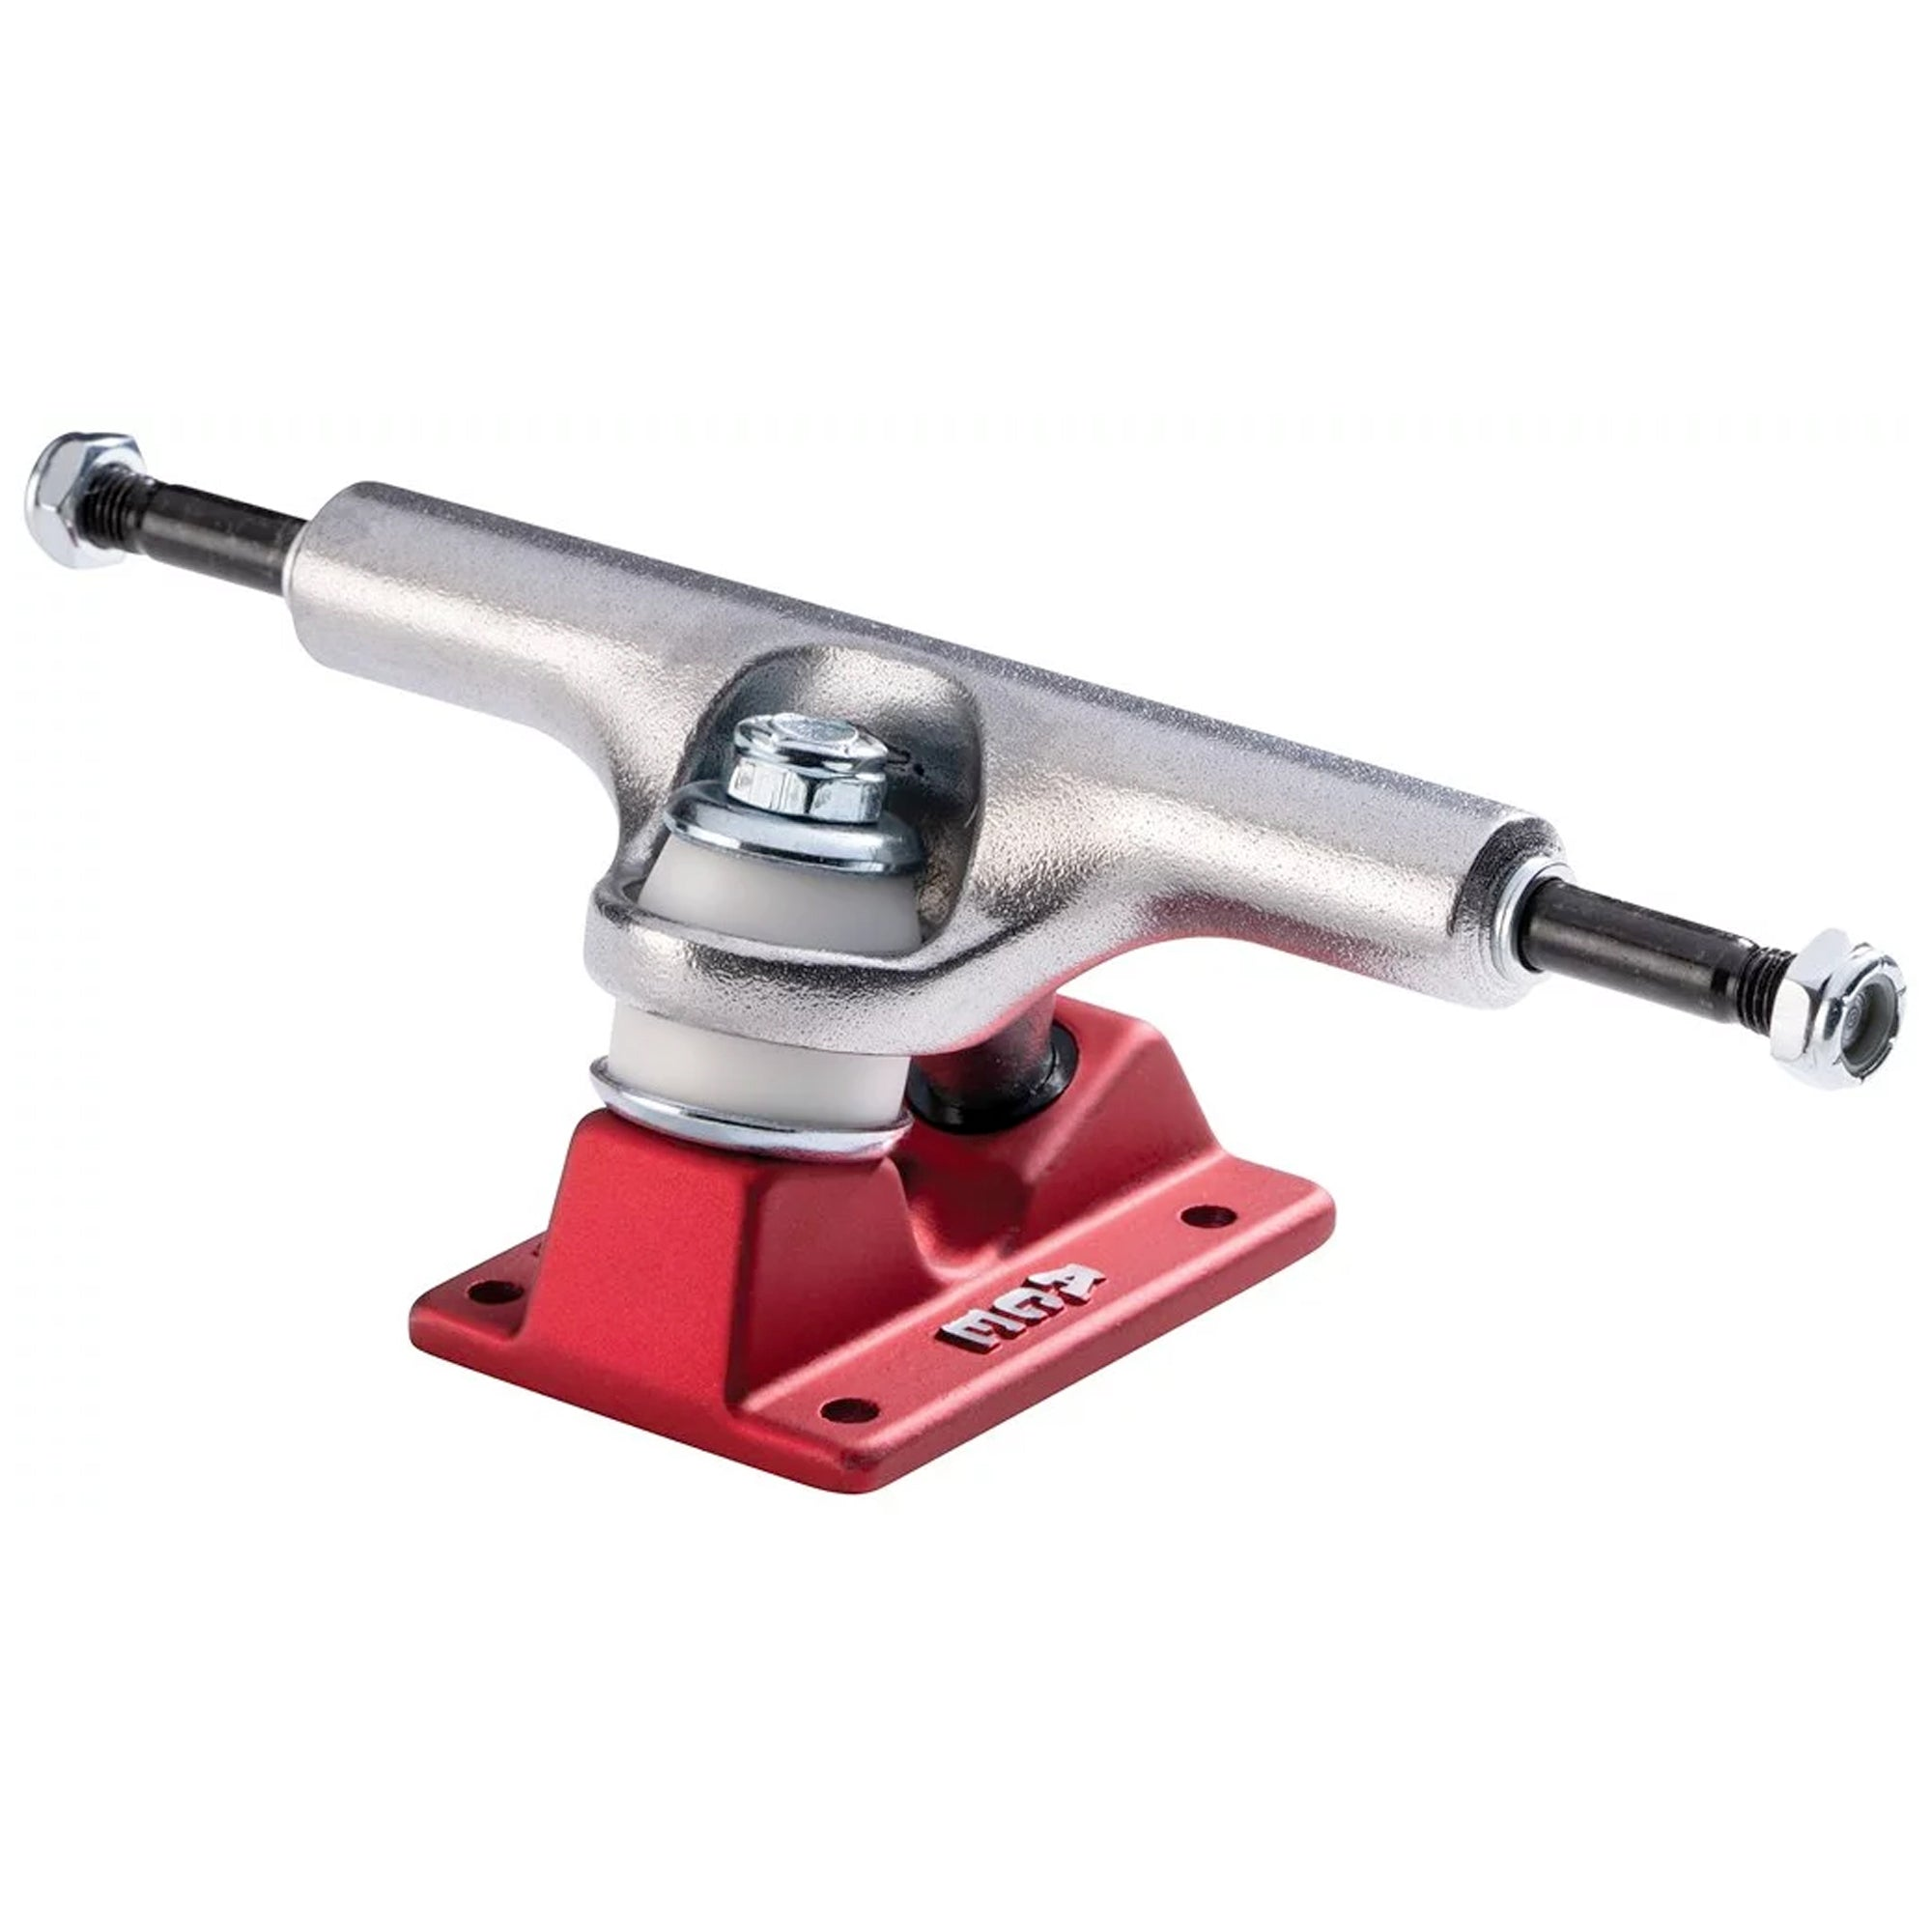 Ace 44/5.75 High Skateboard Trucks - Red